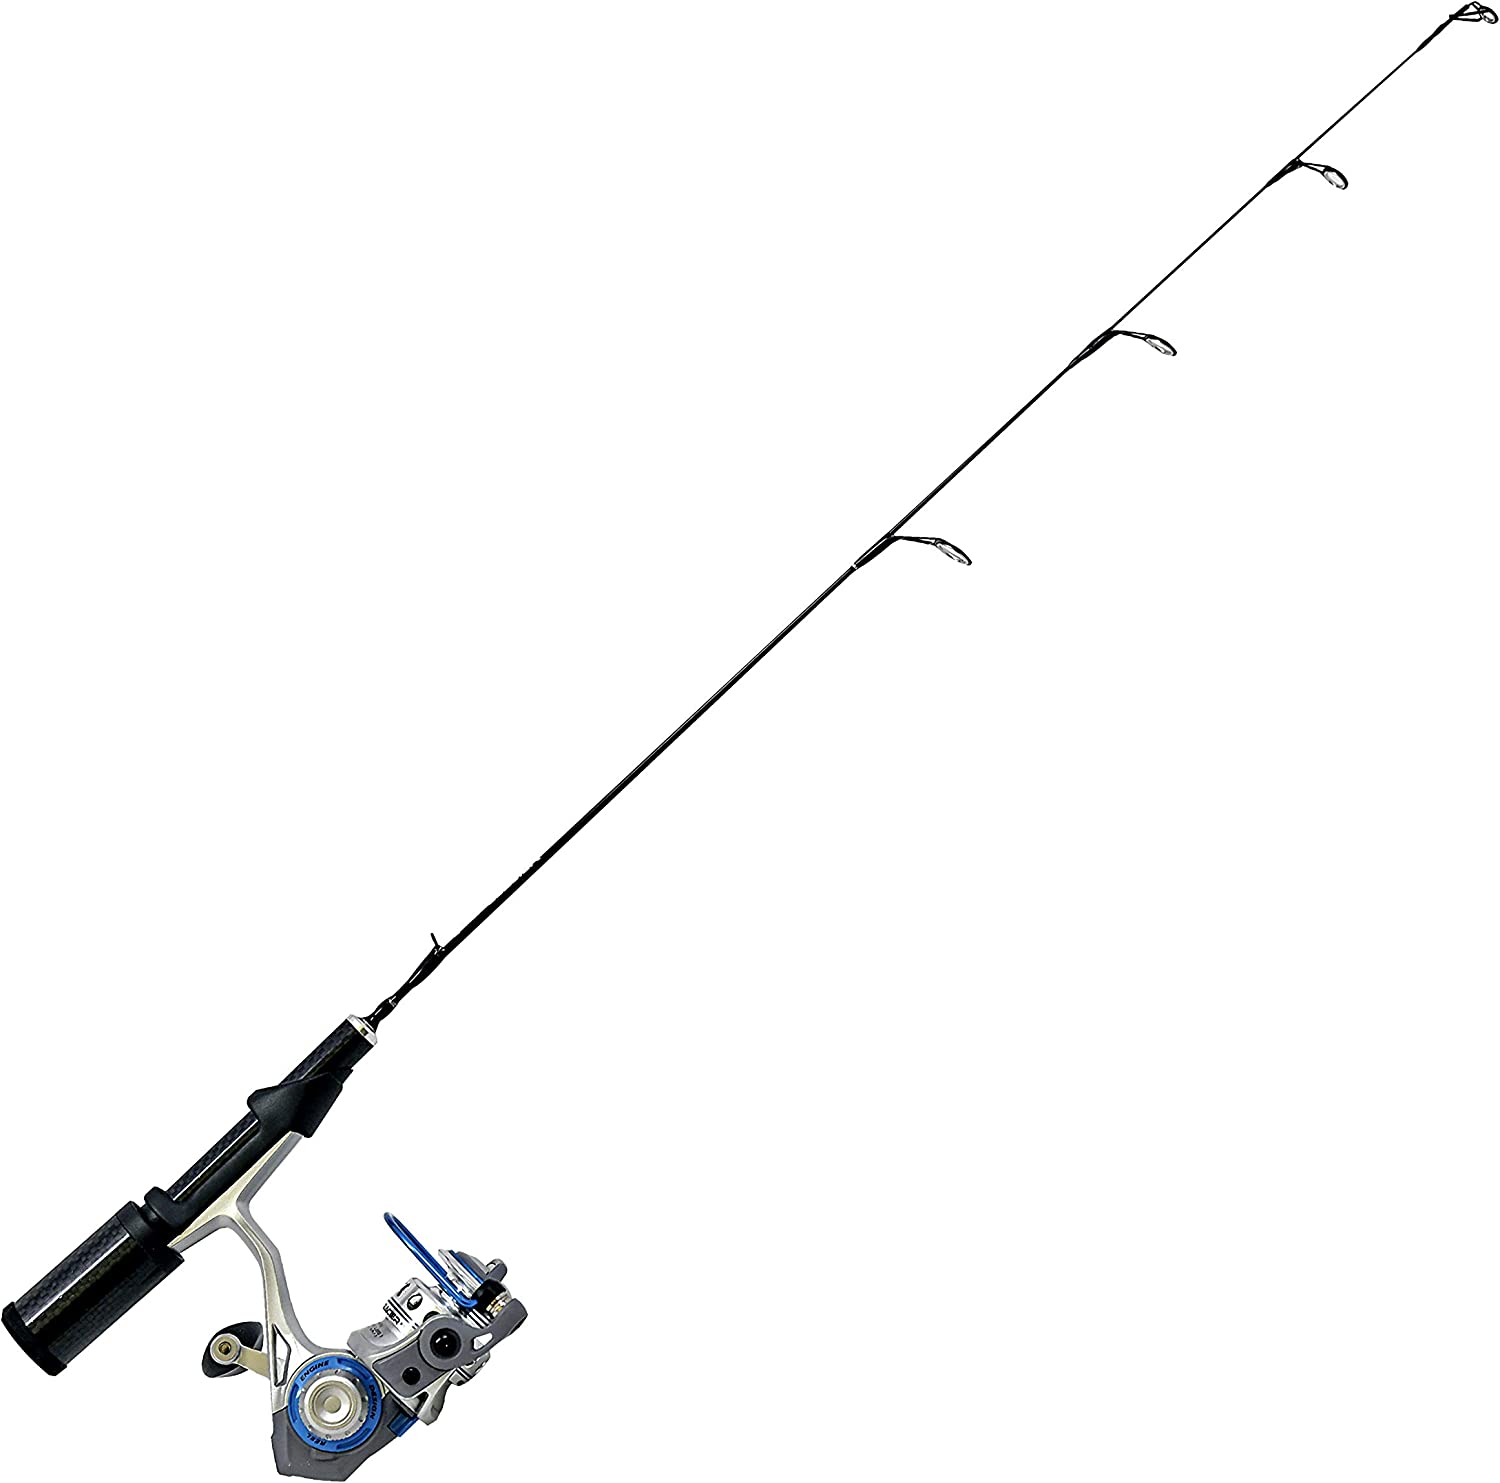 Quantum Glacier XTi Spinning Industry No. 1 Reel and Rod Combo Outlet sale feature Ice Sol Fishing